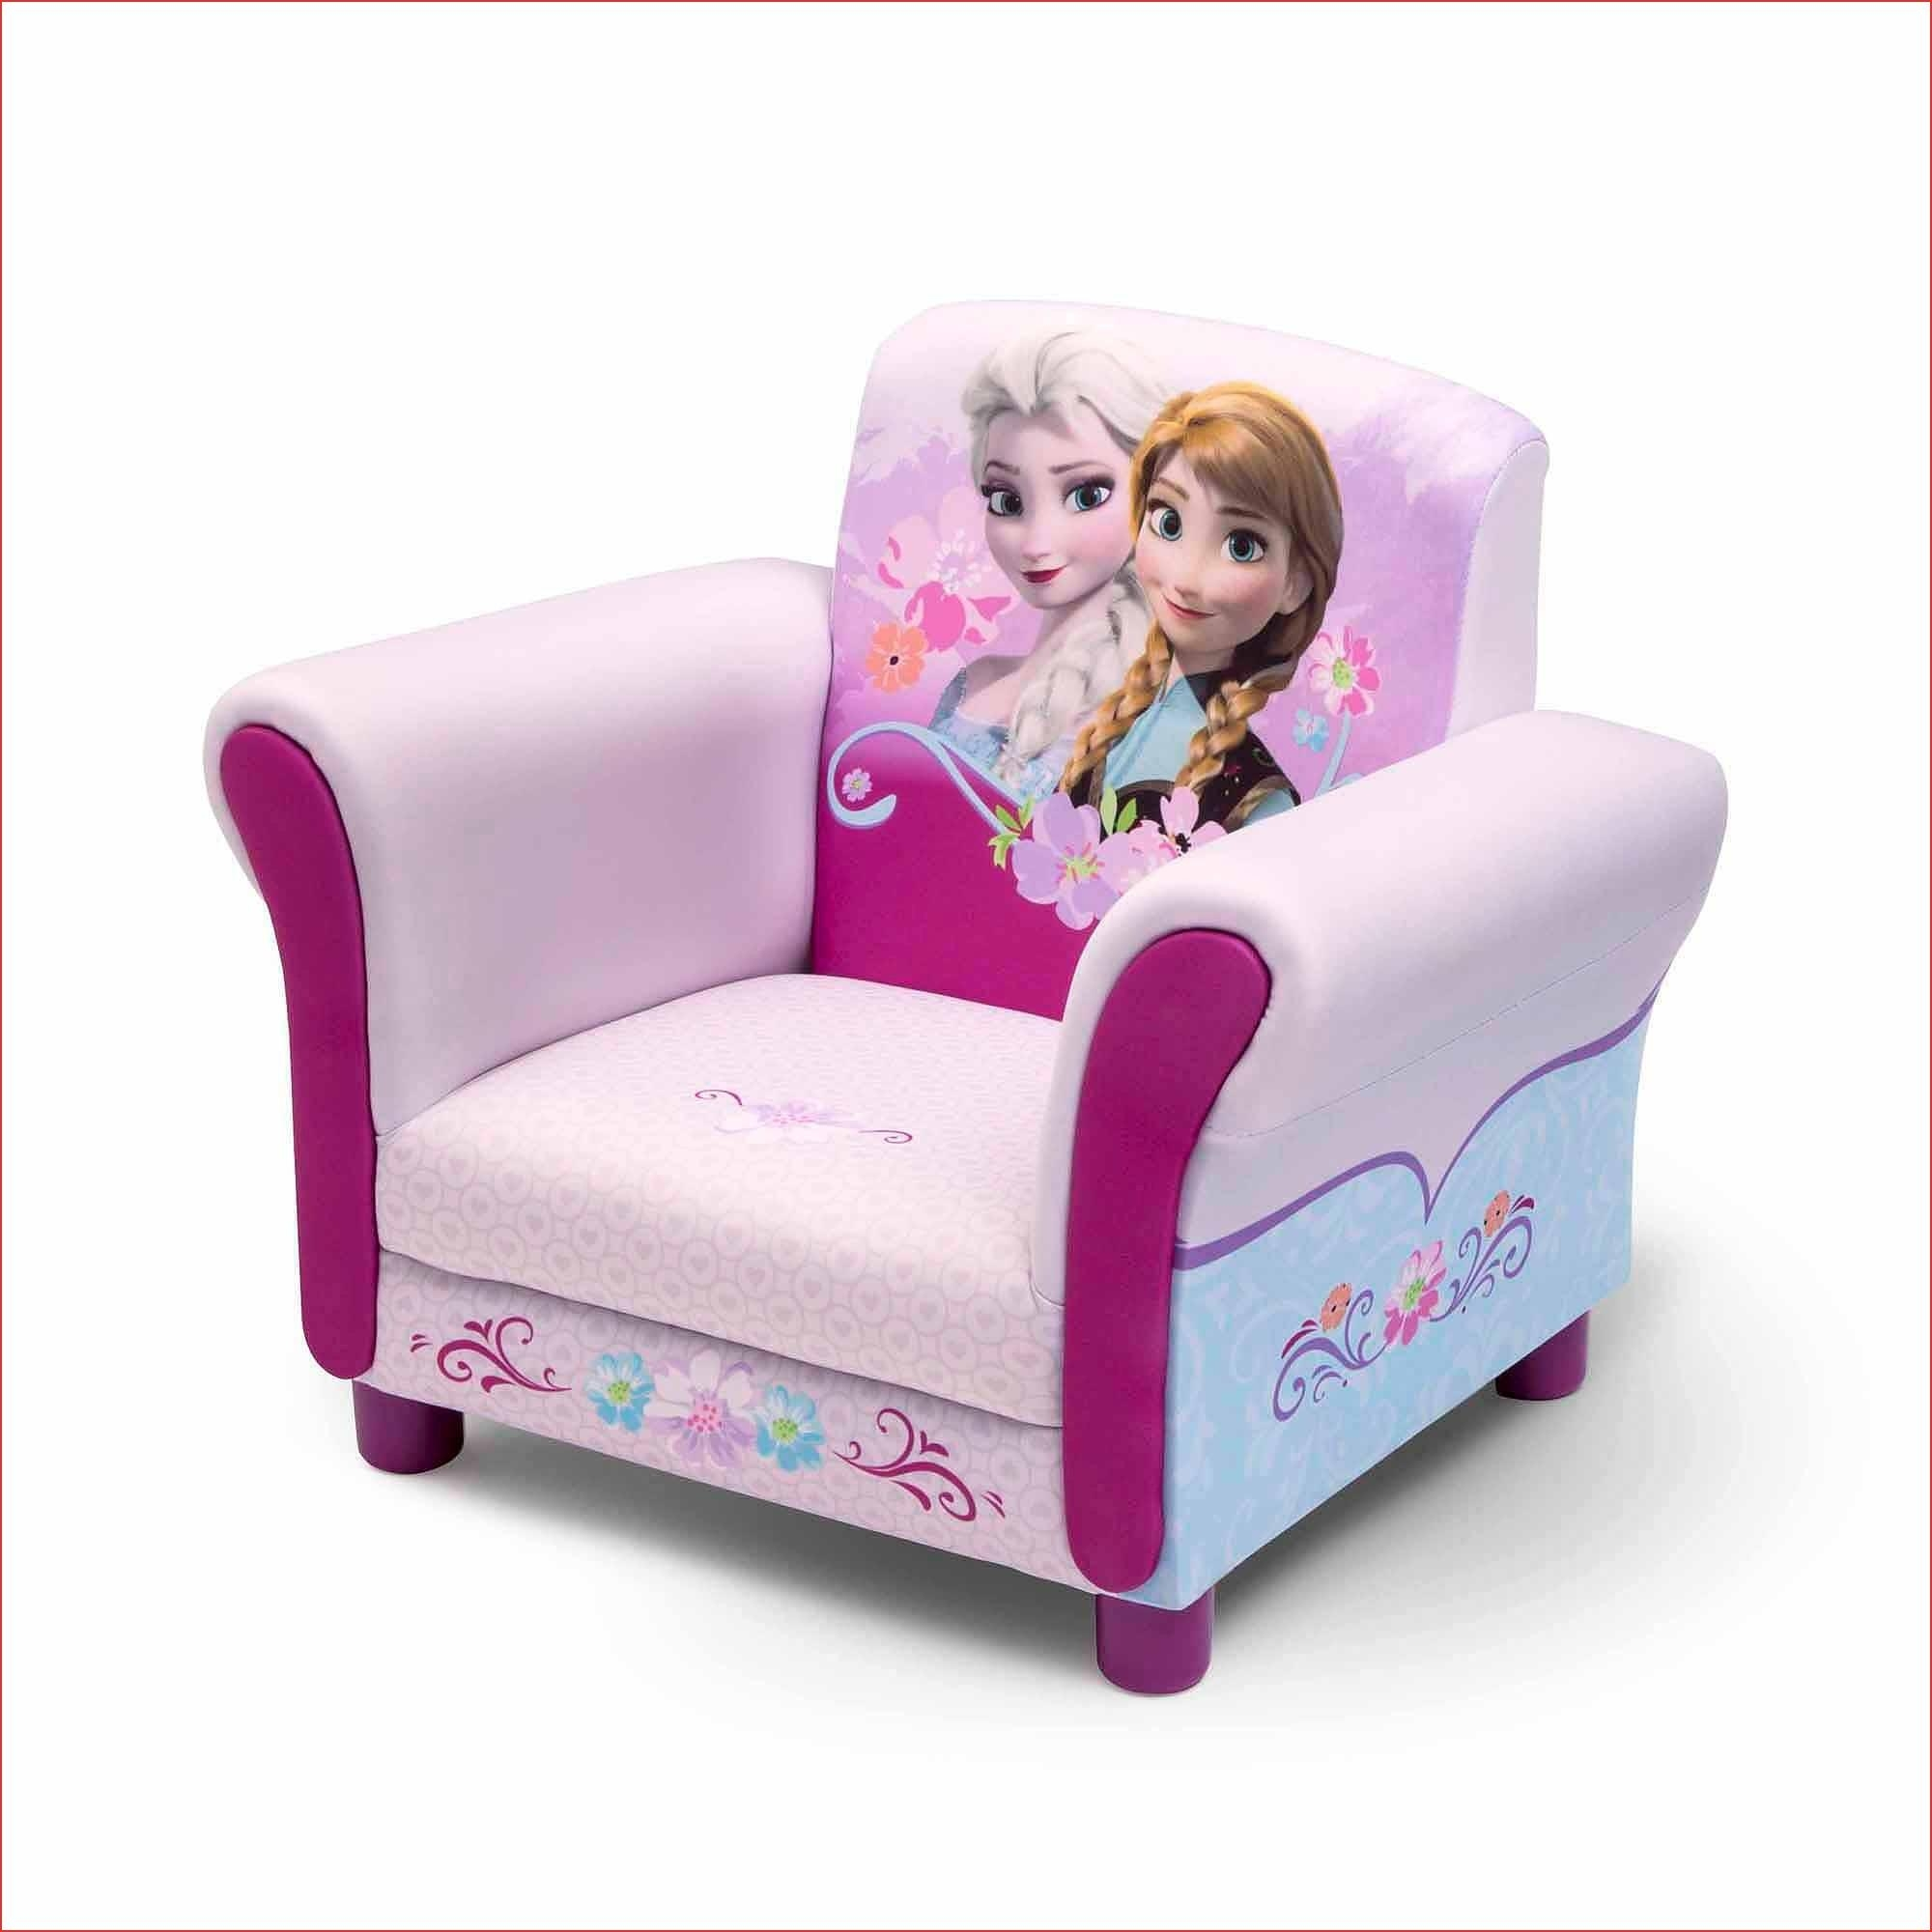 Personalized Chairs 20 Top Personalized Kids Chairs And Sofas Sofa Ideas